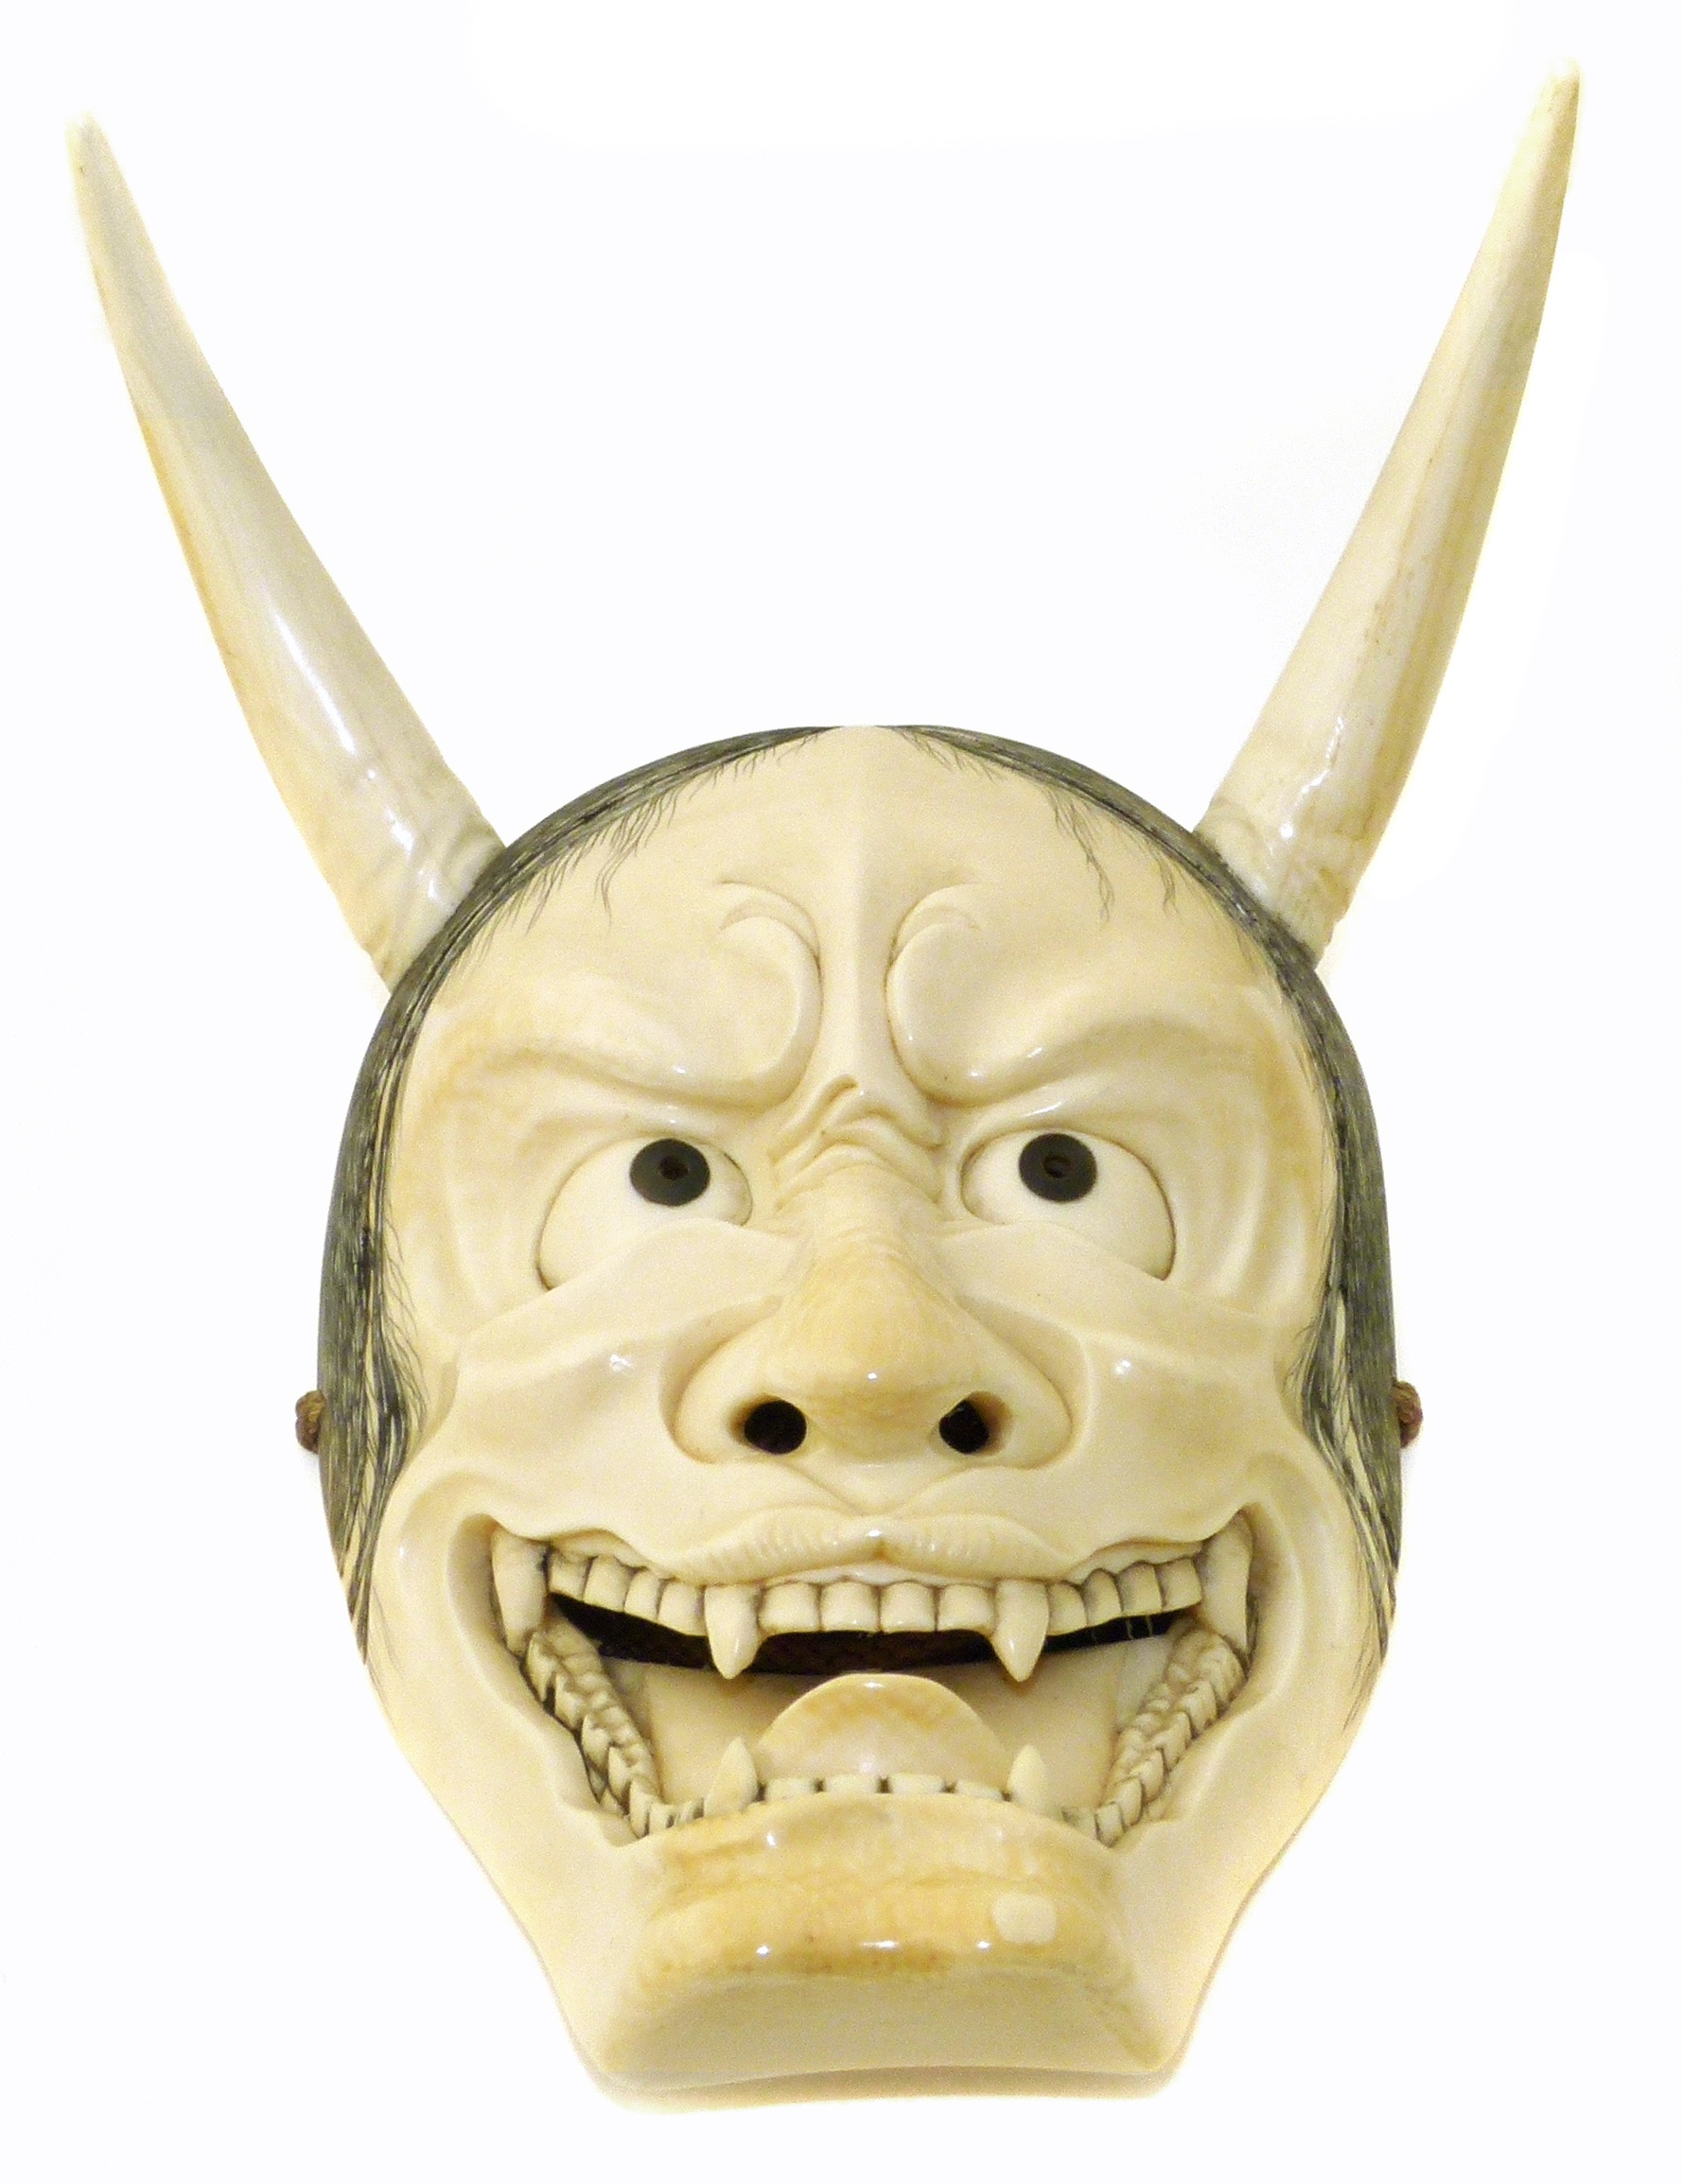 Japanese Meji Period Ivory Noh Mask depicting Hannya